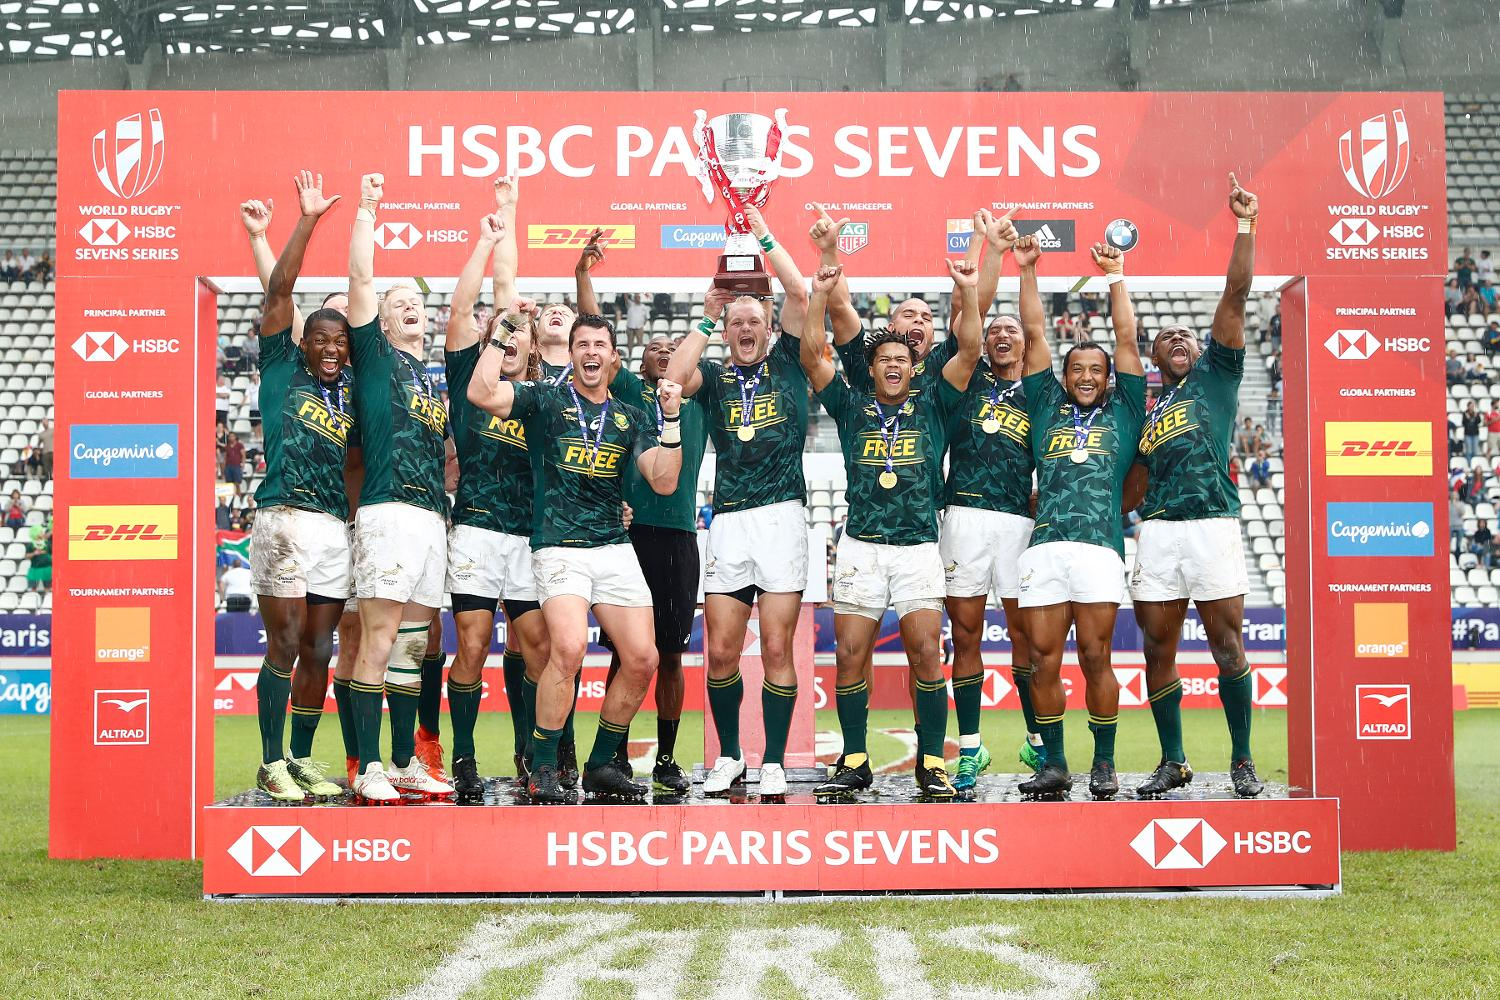 HSBC Paris Sevens 2018